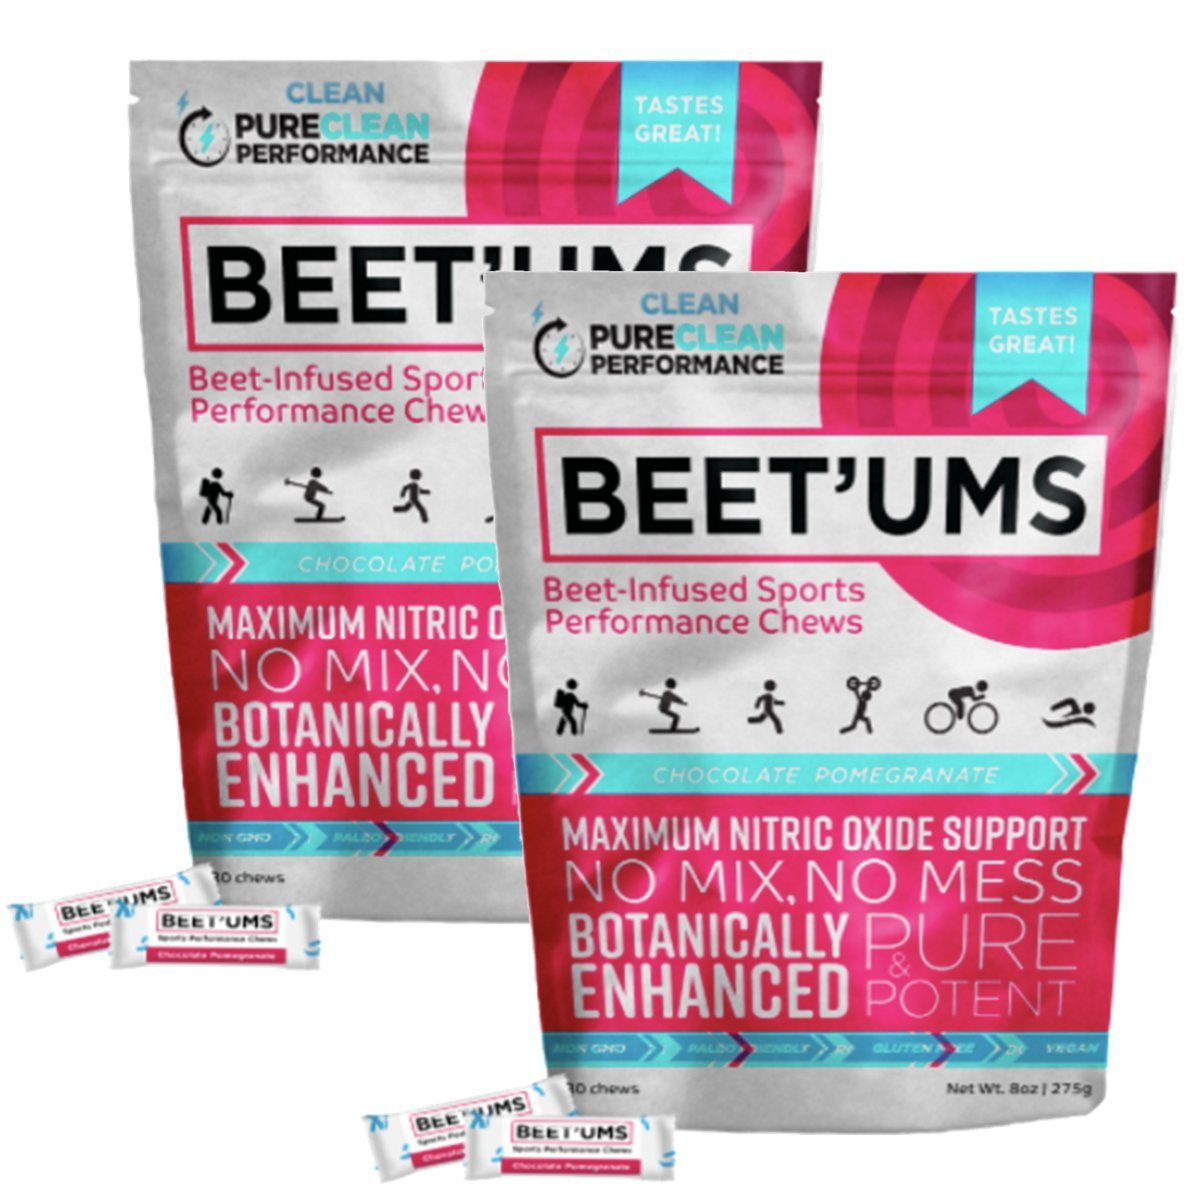 Beet'Ums - 2 Pack, Beet Infused Chocolate Pomegranate Performance Chews – PureClean Performance Super Beets, Concentrated Fermented Beet Juice Powder – Enhanced for Maximum Blood Pressure Benefits.